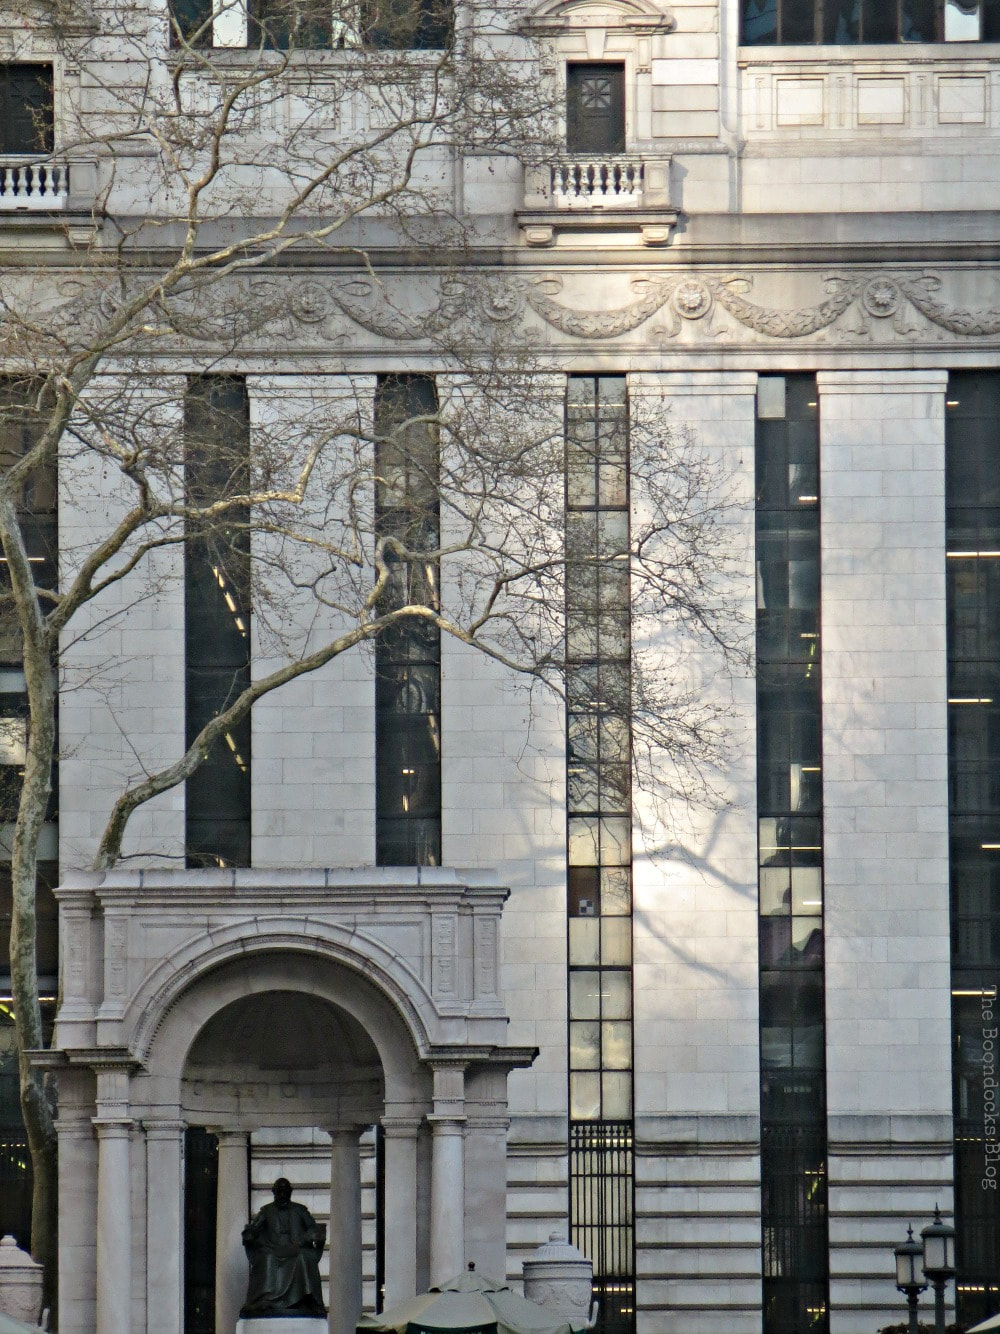 Close up of Library Building and patches of sunlight, Bryant Park New York, #NewYork #BryantPark #Travel #photography #photoessay #manhattan #midtown #publicparks A Visit to the Restored Bryant Park and its Surrounding Areas www.theboondocksblog.com